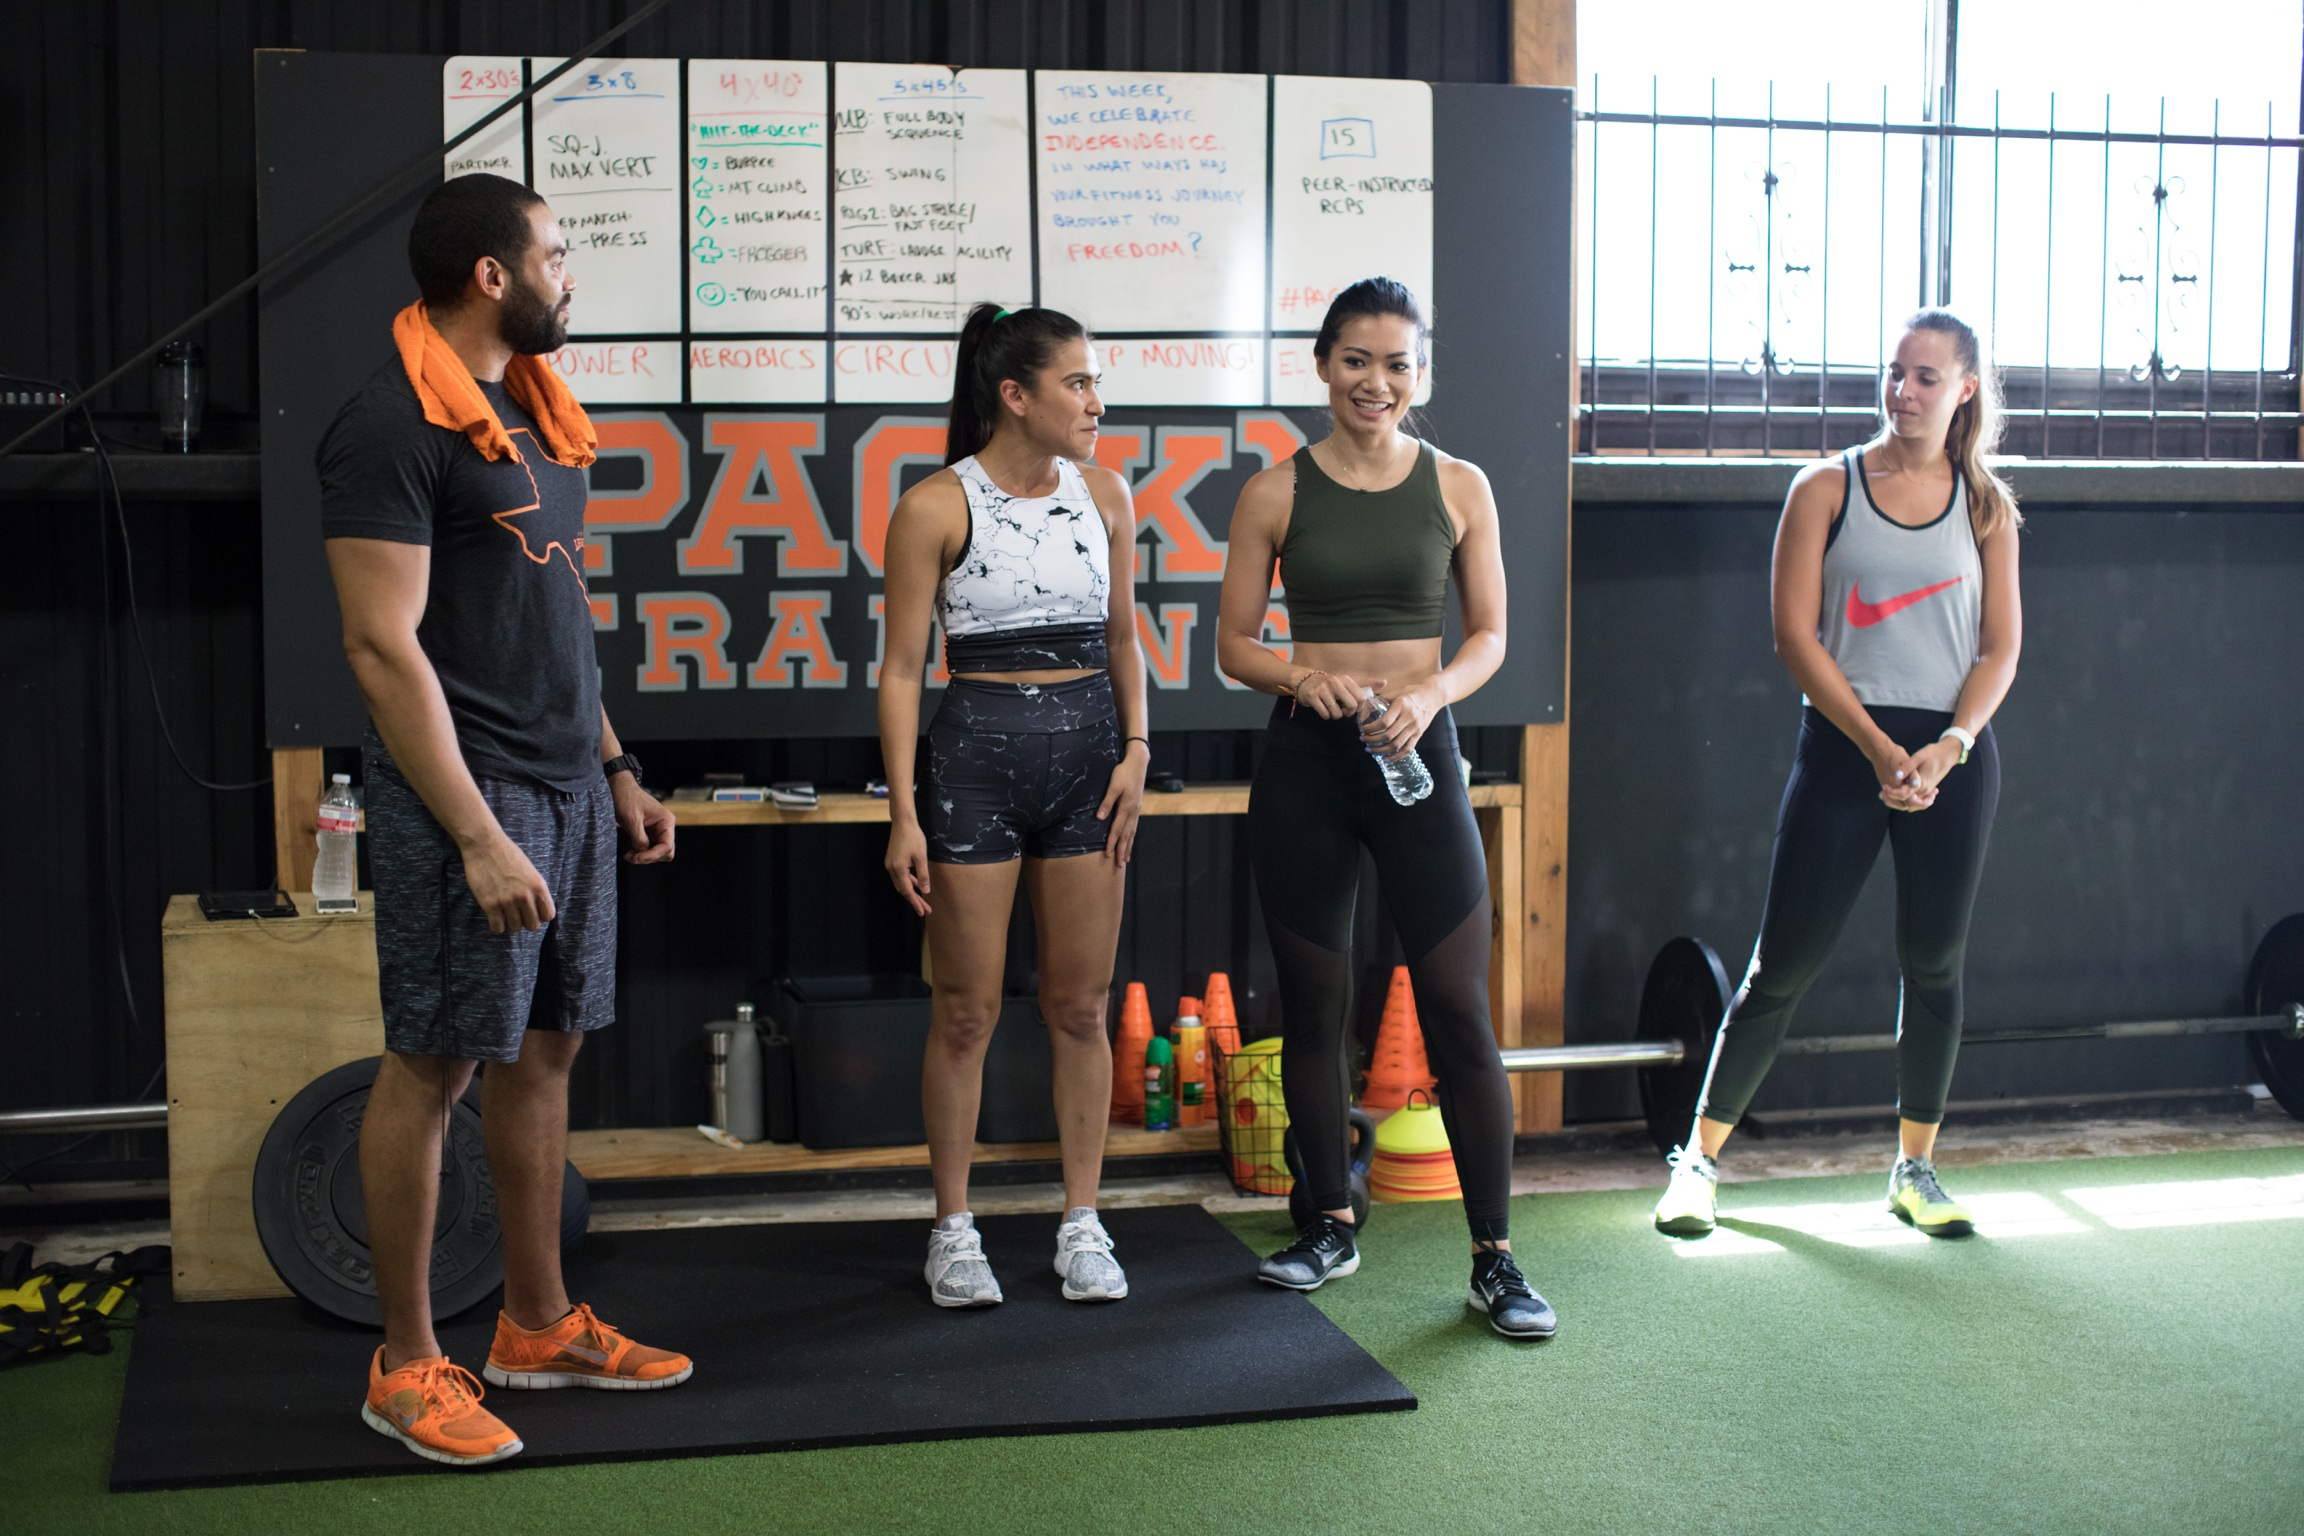 Starla and I introducing Terry, owner of The League, and Marlee, before they kick our butts with a PAC(K) Training class, which combines strength training and conditioning exercises!